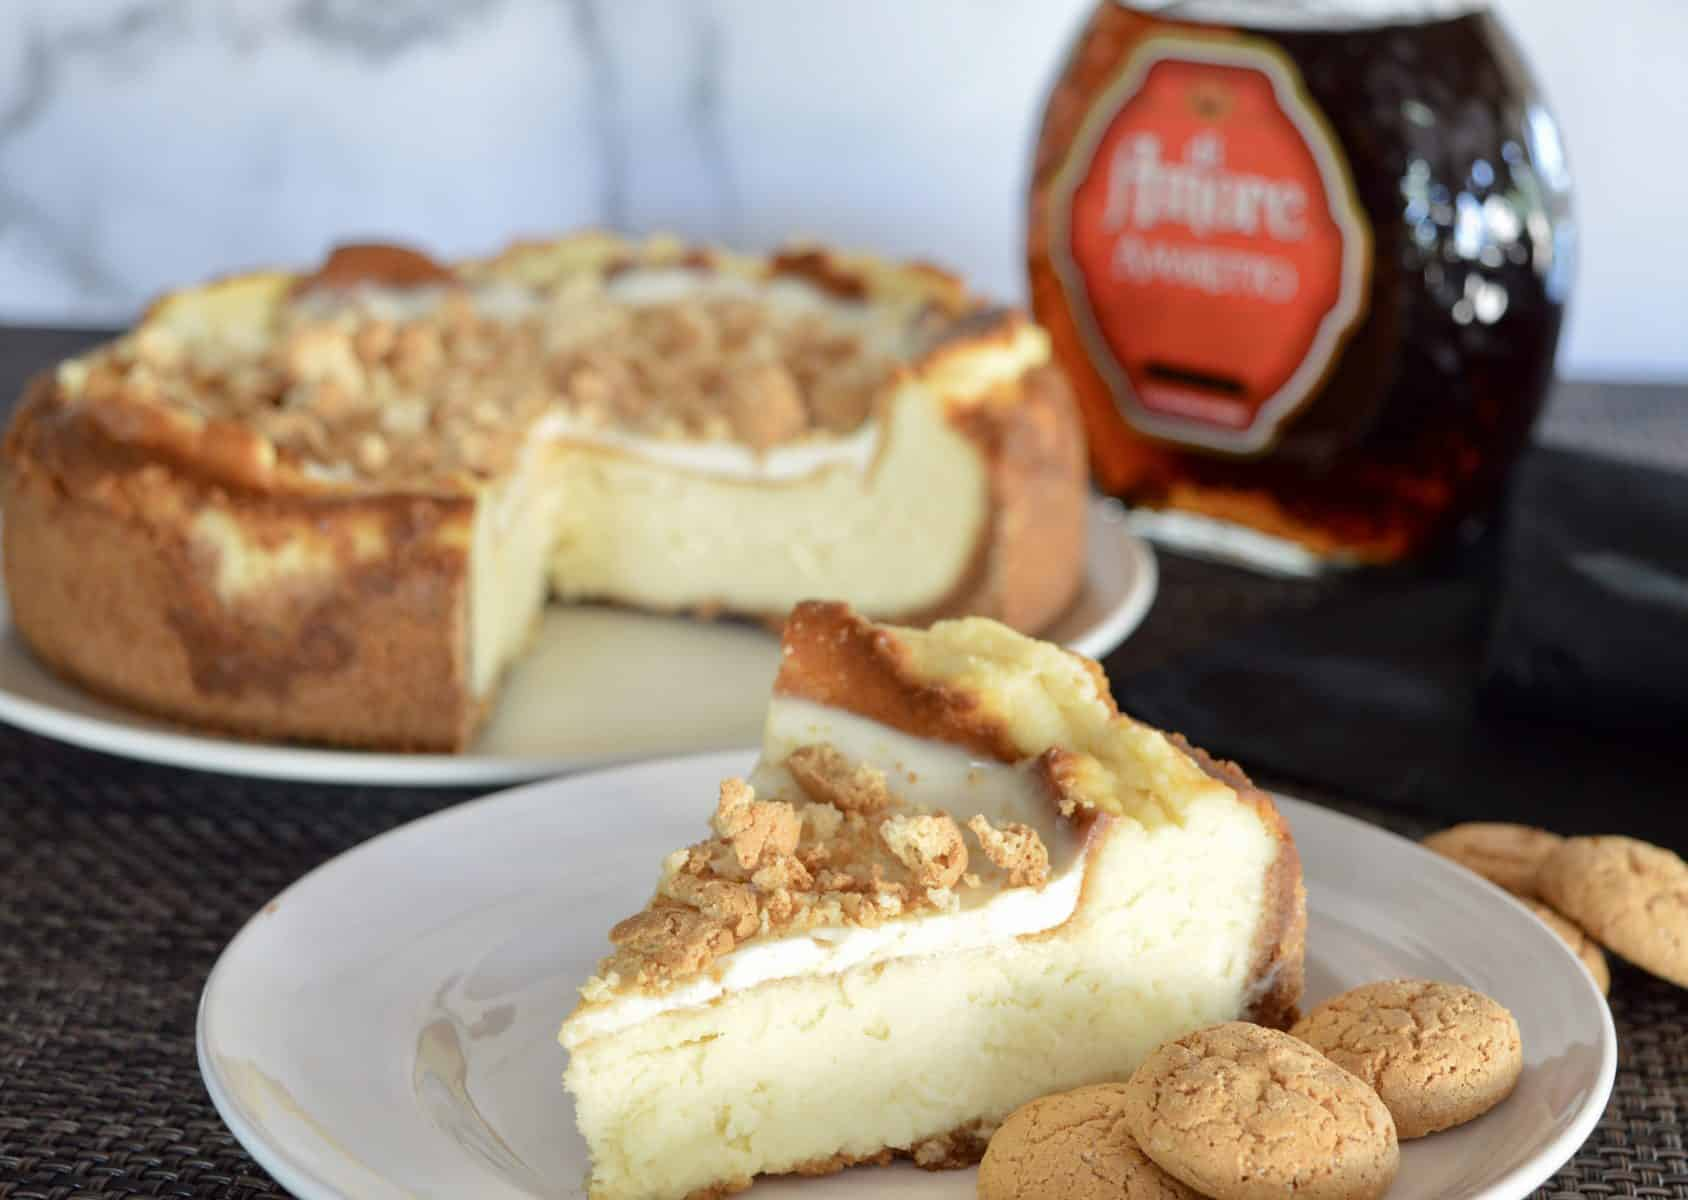 Amaretto Liqueur with a slice of cheesecake.